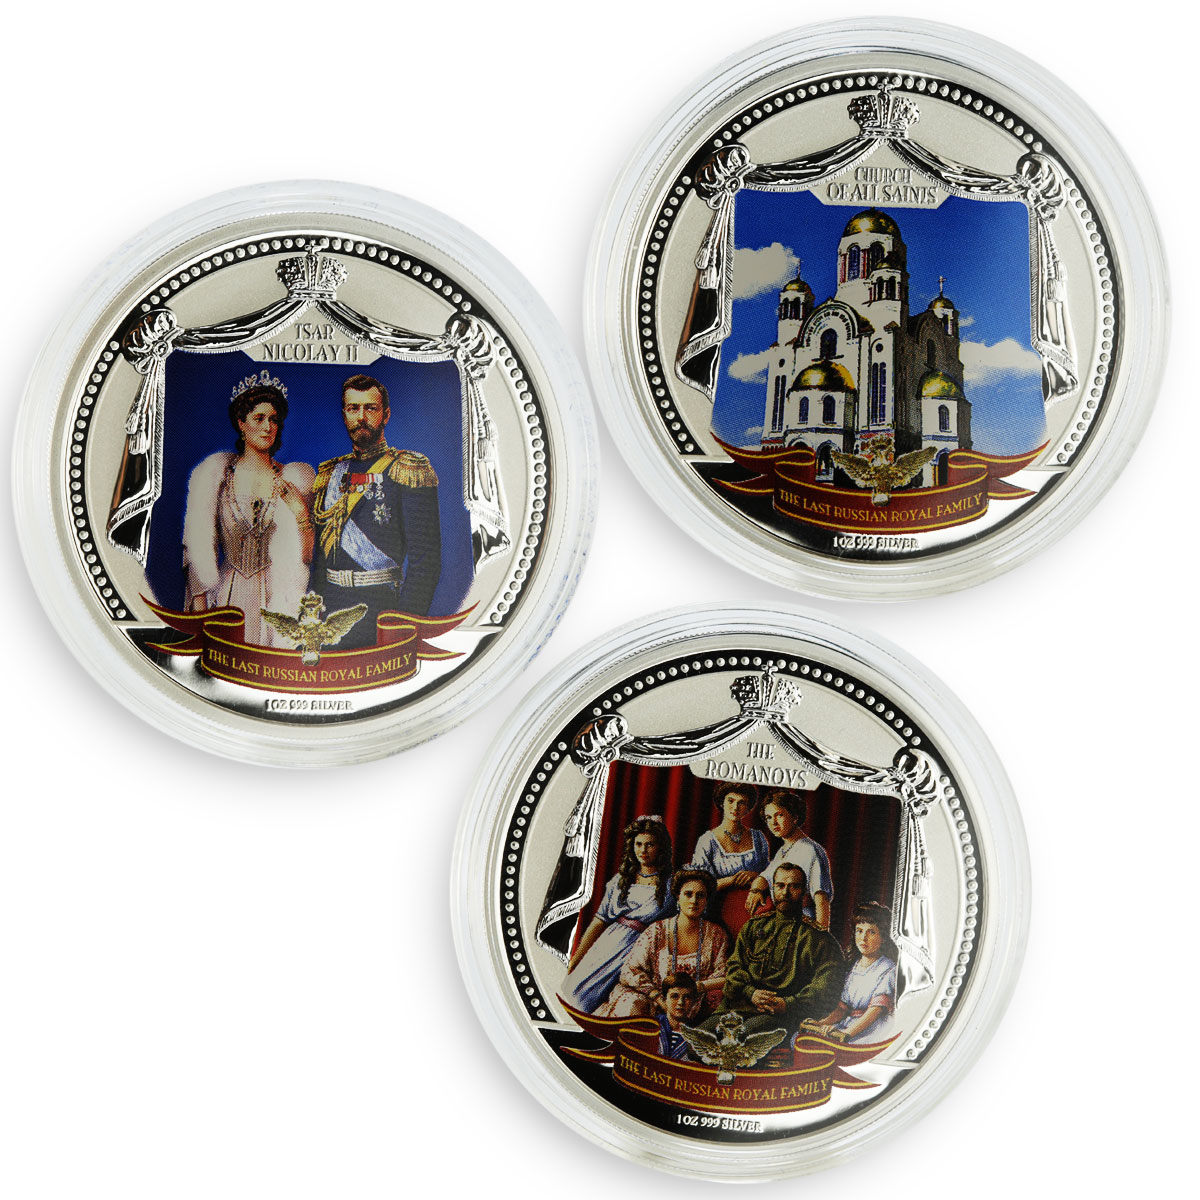 Fiji set 3 coins The Last Russian Royal Family Romanovs colored silver 2009